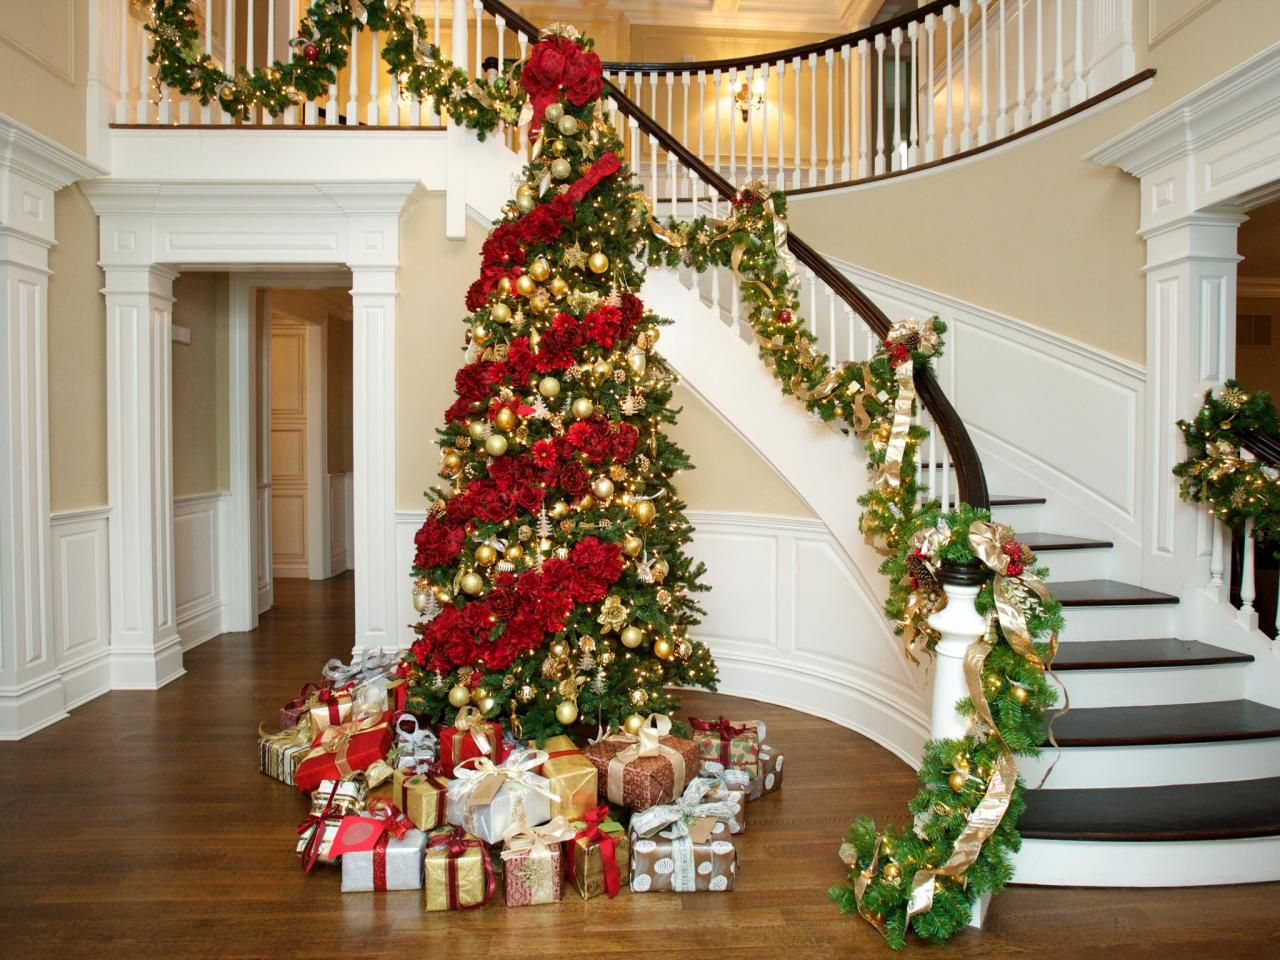 Celebrity Home Decorating Celebrity Holiday Homes Baron Holiday Decorating And